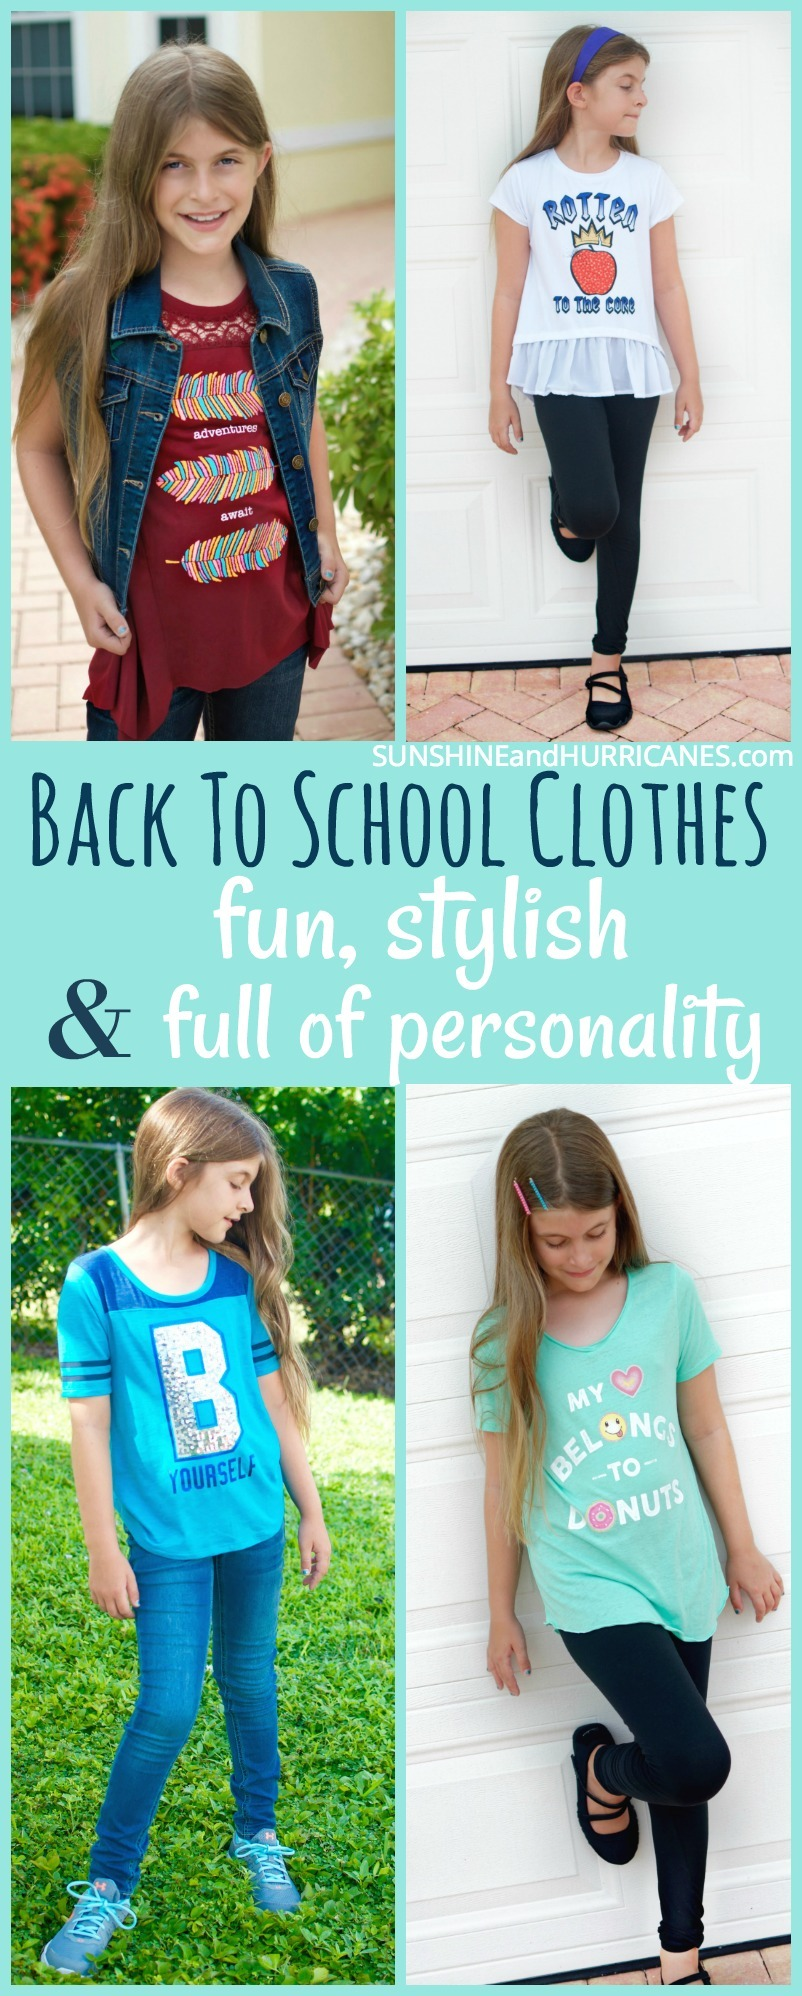 Simplify and save without sacrificing style when it comes to buying back to school clothes for kids. Build off of basics, add in a few trendy pieces and then mix & match for tons of fashionable outfit choices.